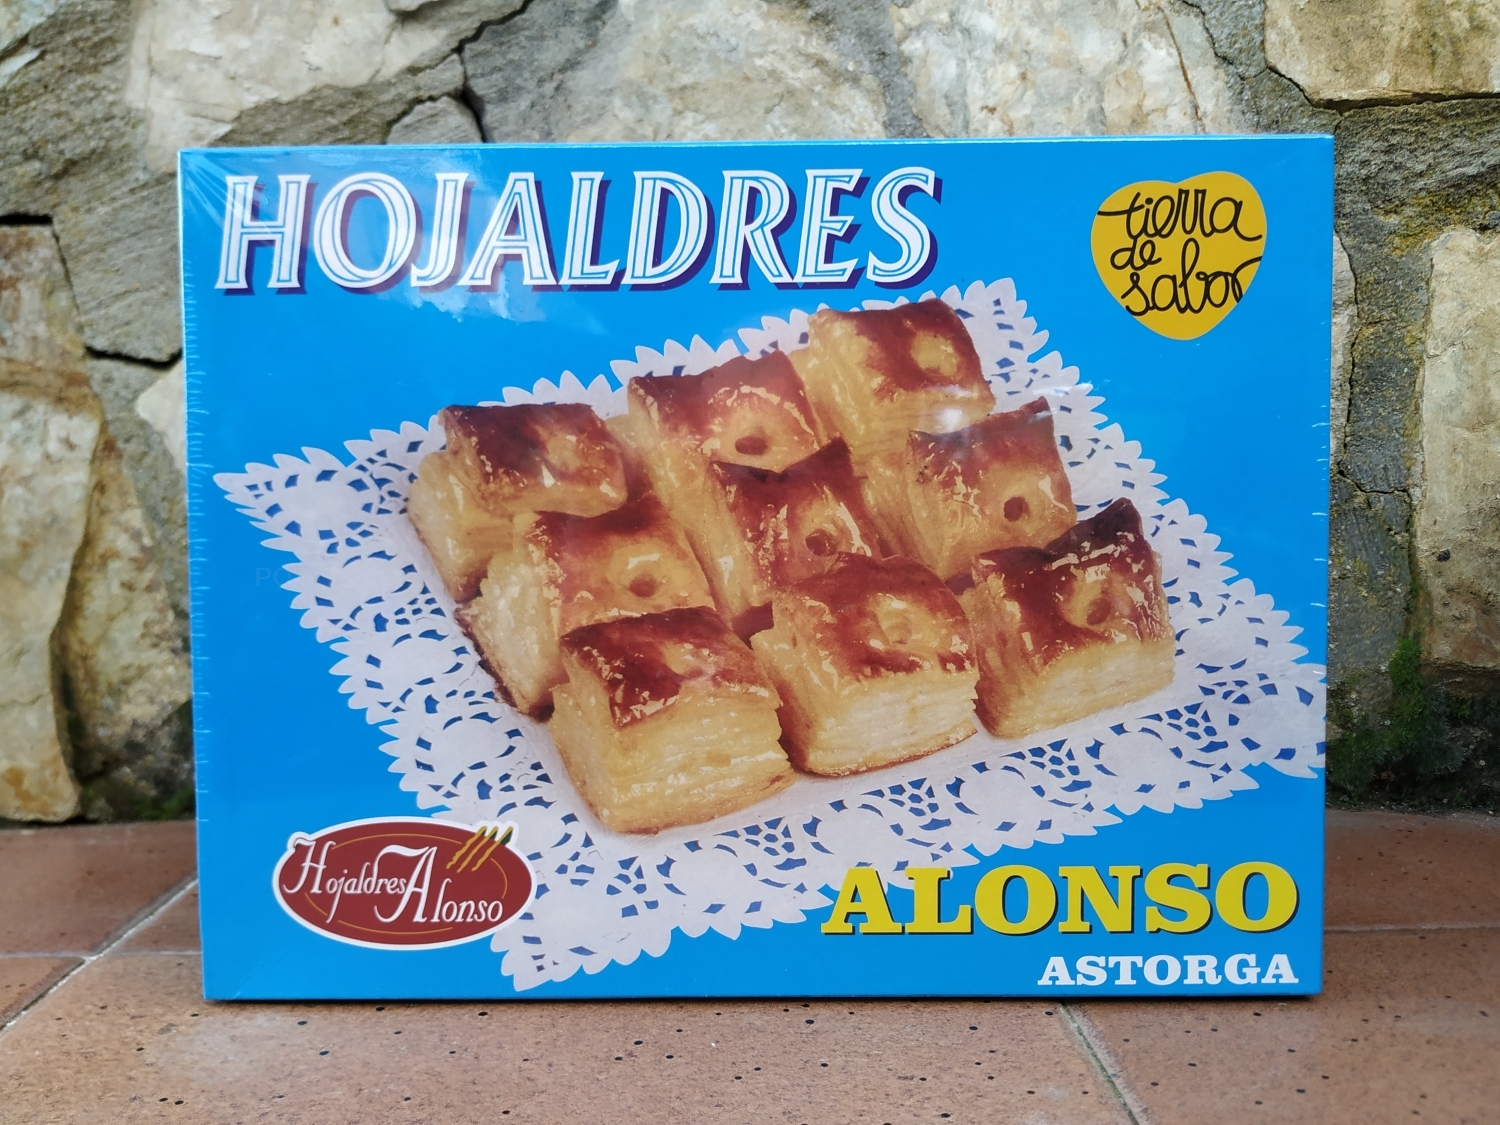 Hojaldres Alonso